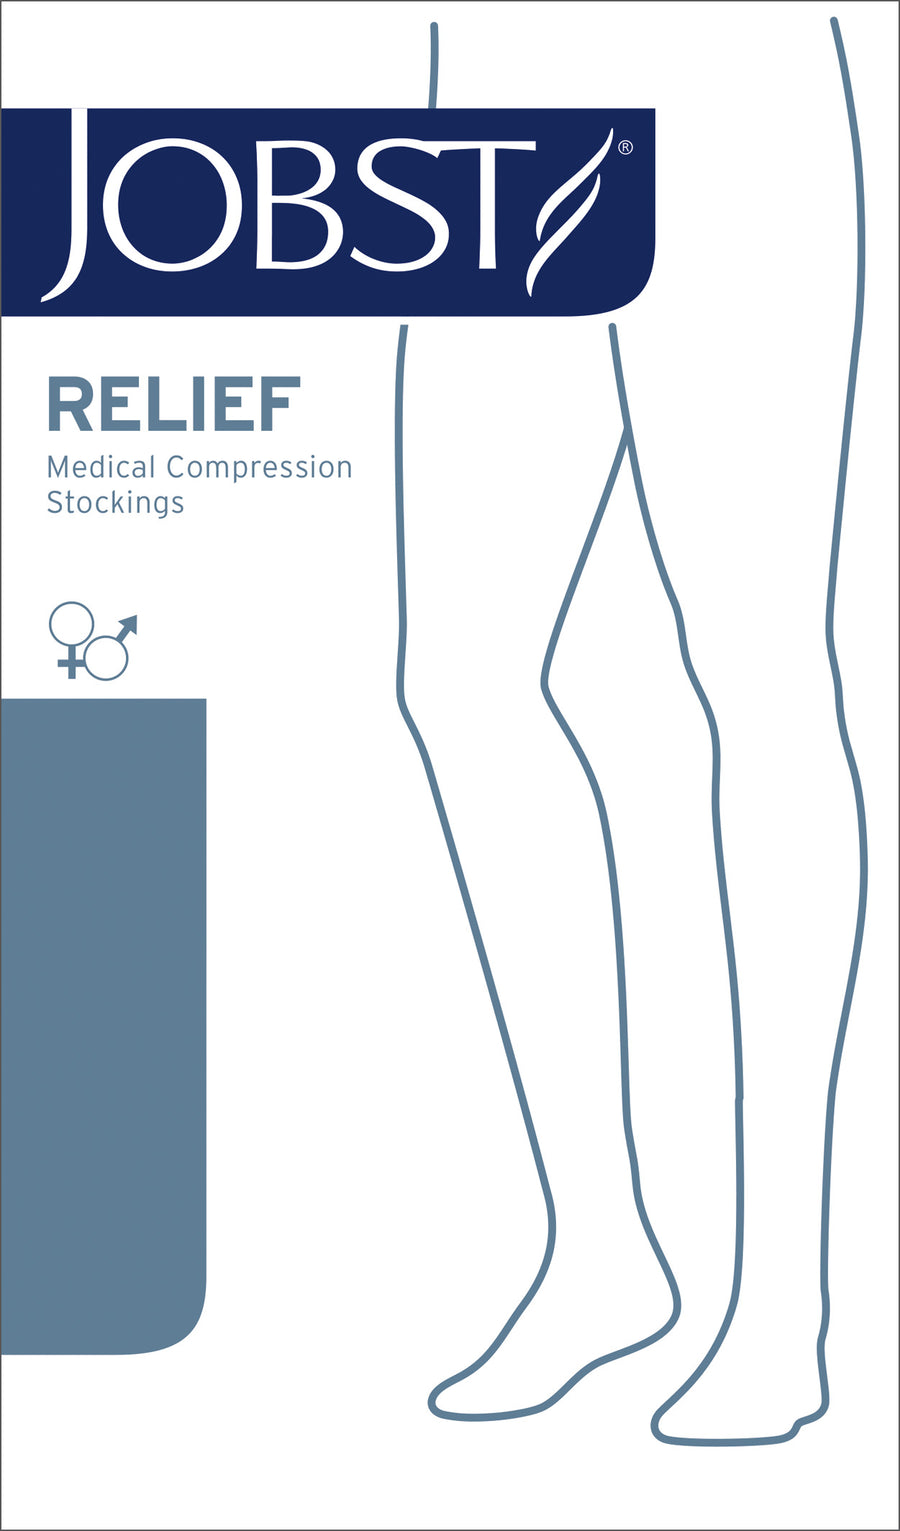 JOBST® Relief Waist High